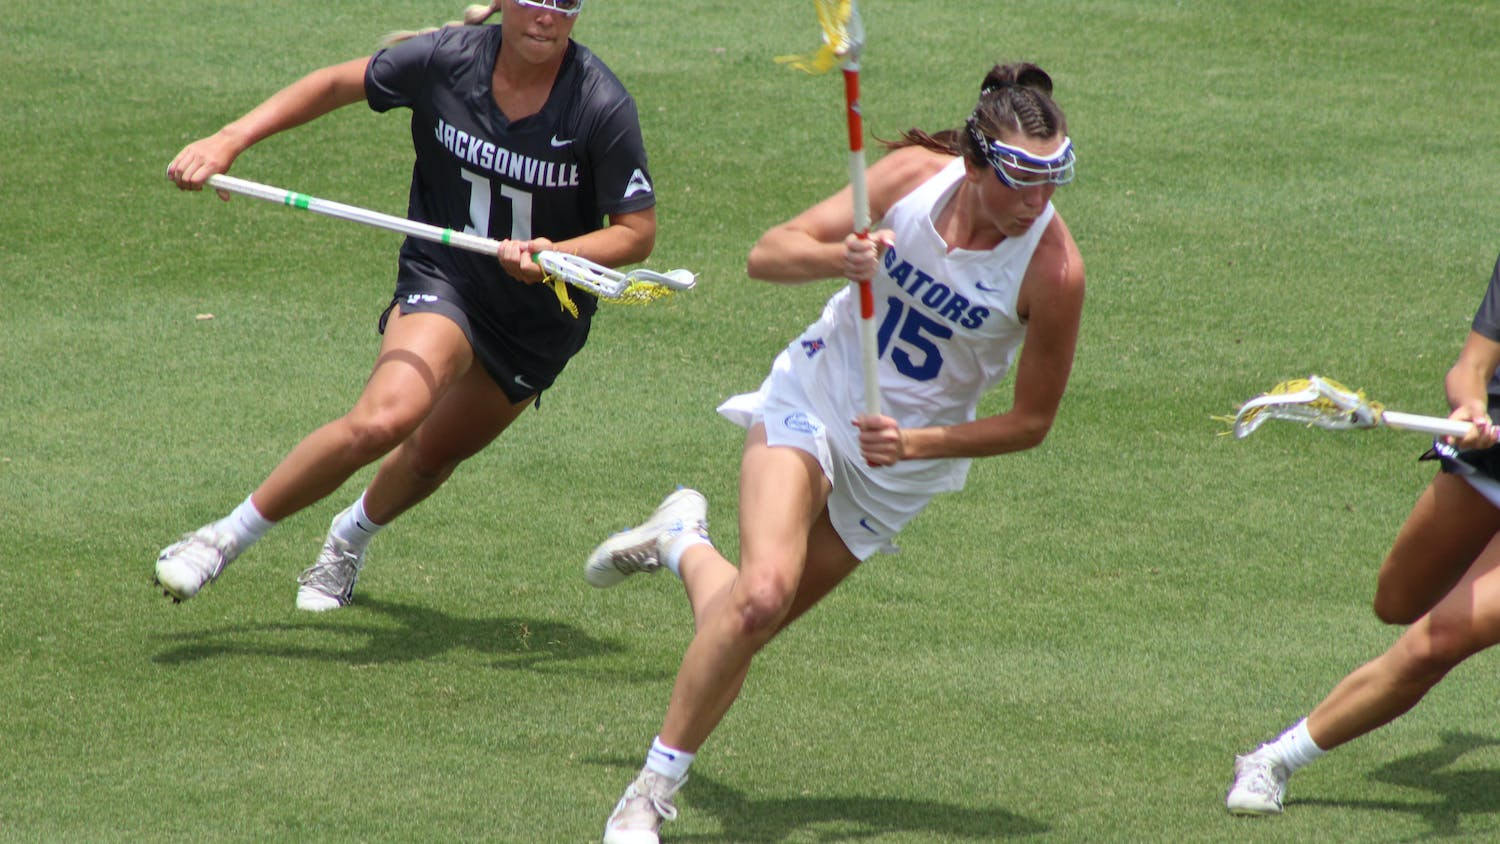 Attacker Grace Haus races down the field in Florida's 17-3 win over Jacksonville University.